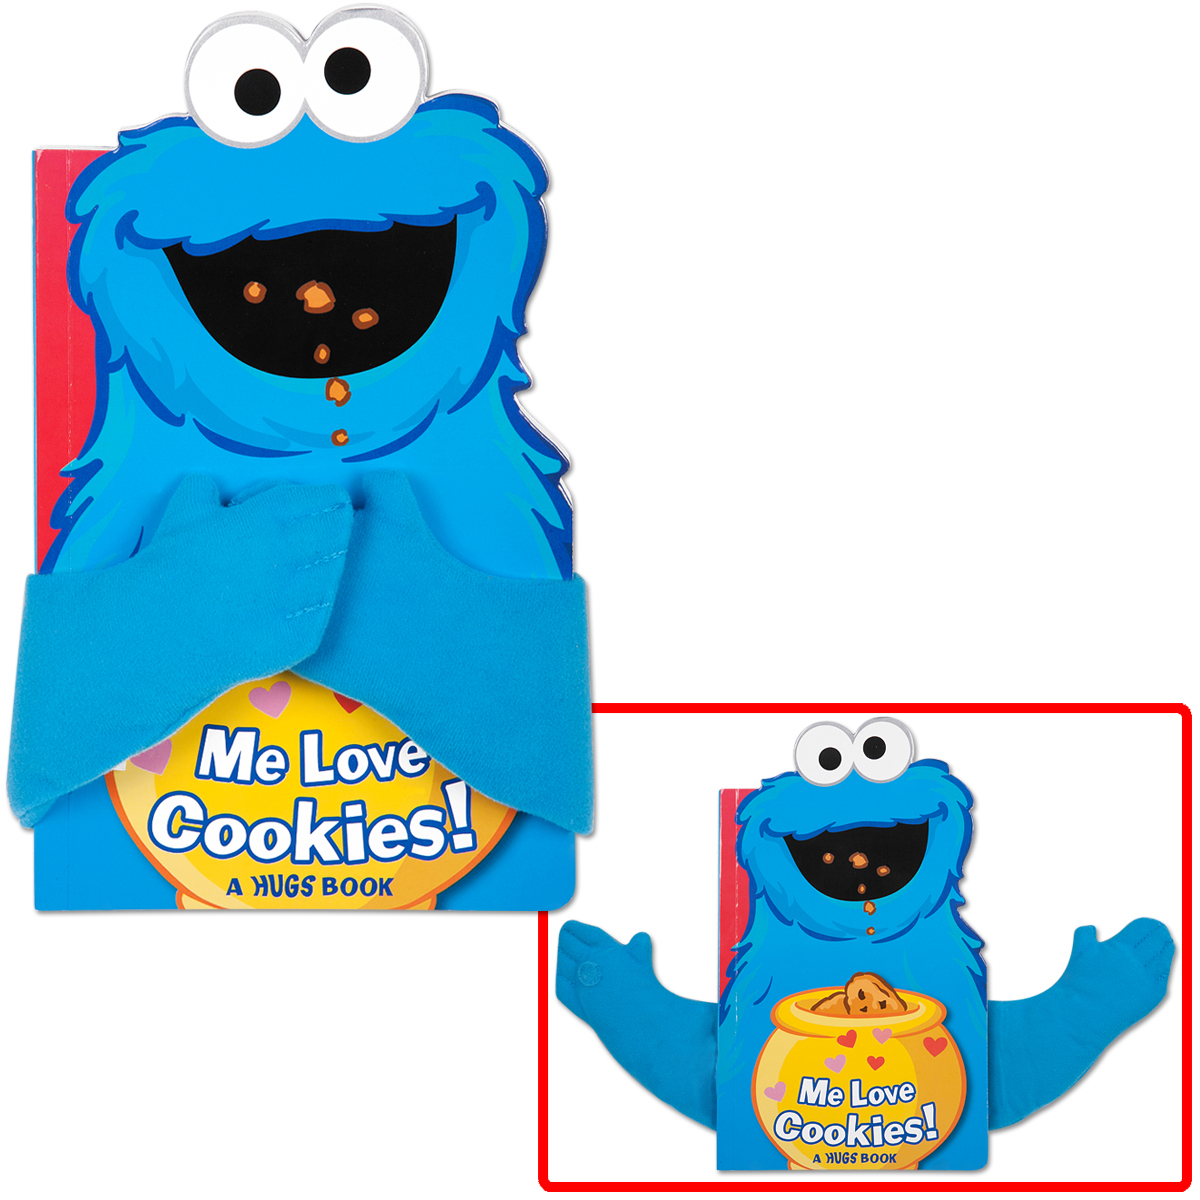 Cookie Monster Me Love Cookies Hugs Book